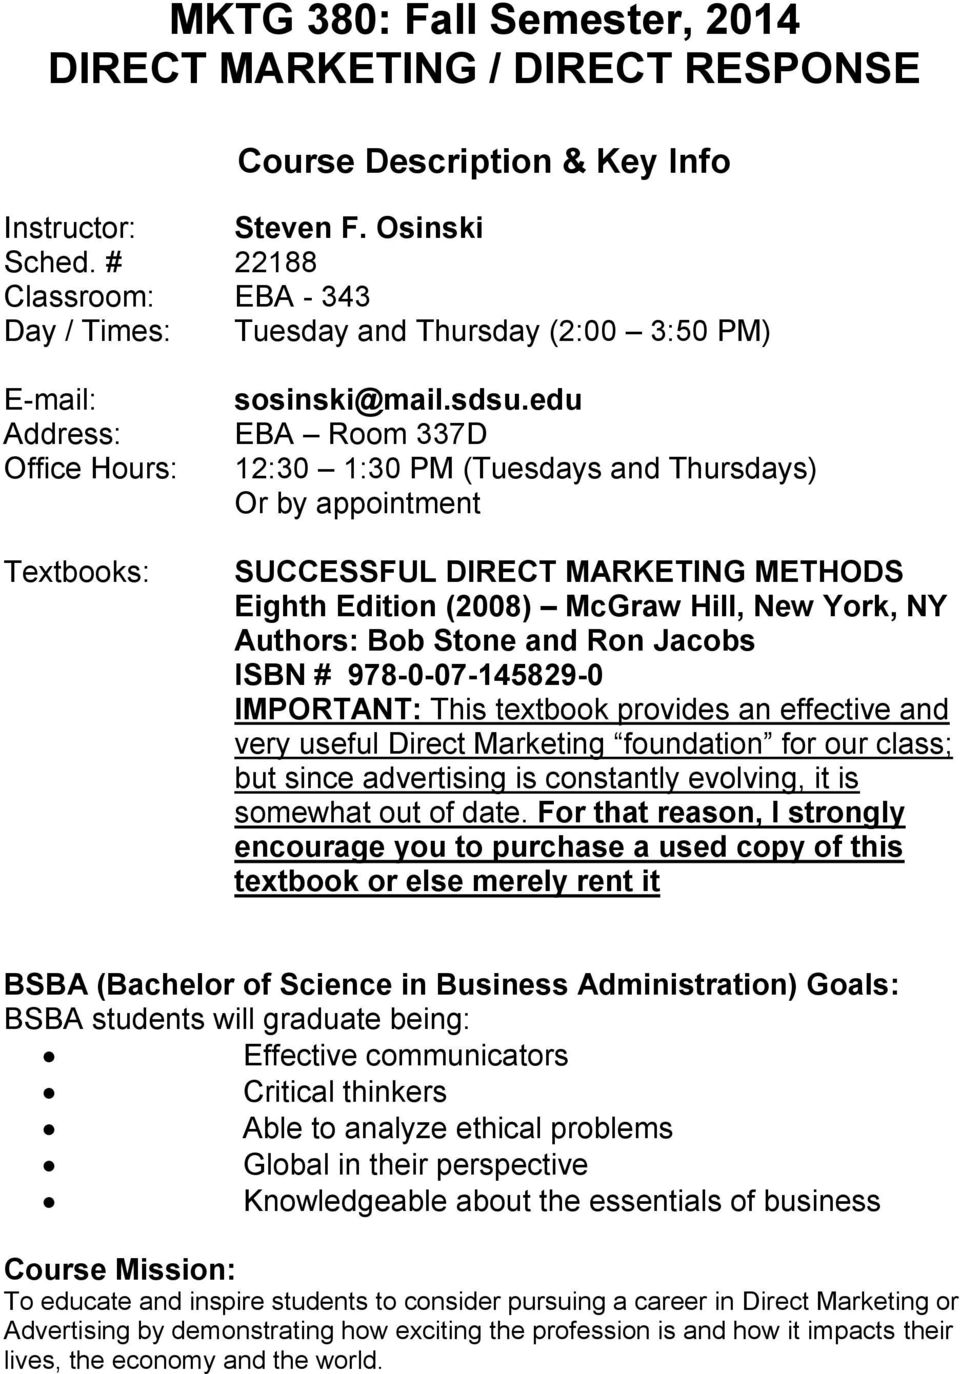 edu EBA Room 337D 12:30 1:30 PM (s and Thursdays) Or by appointment SUCCESSFUL DIRECT MARKETING METHODS Eighth Edition (2008) McGraw Hill, New York, NY Authors: Bob Stone and Ron Jacobs ISBN #